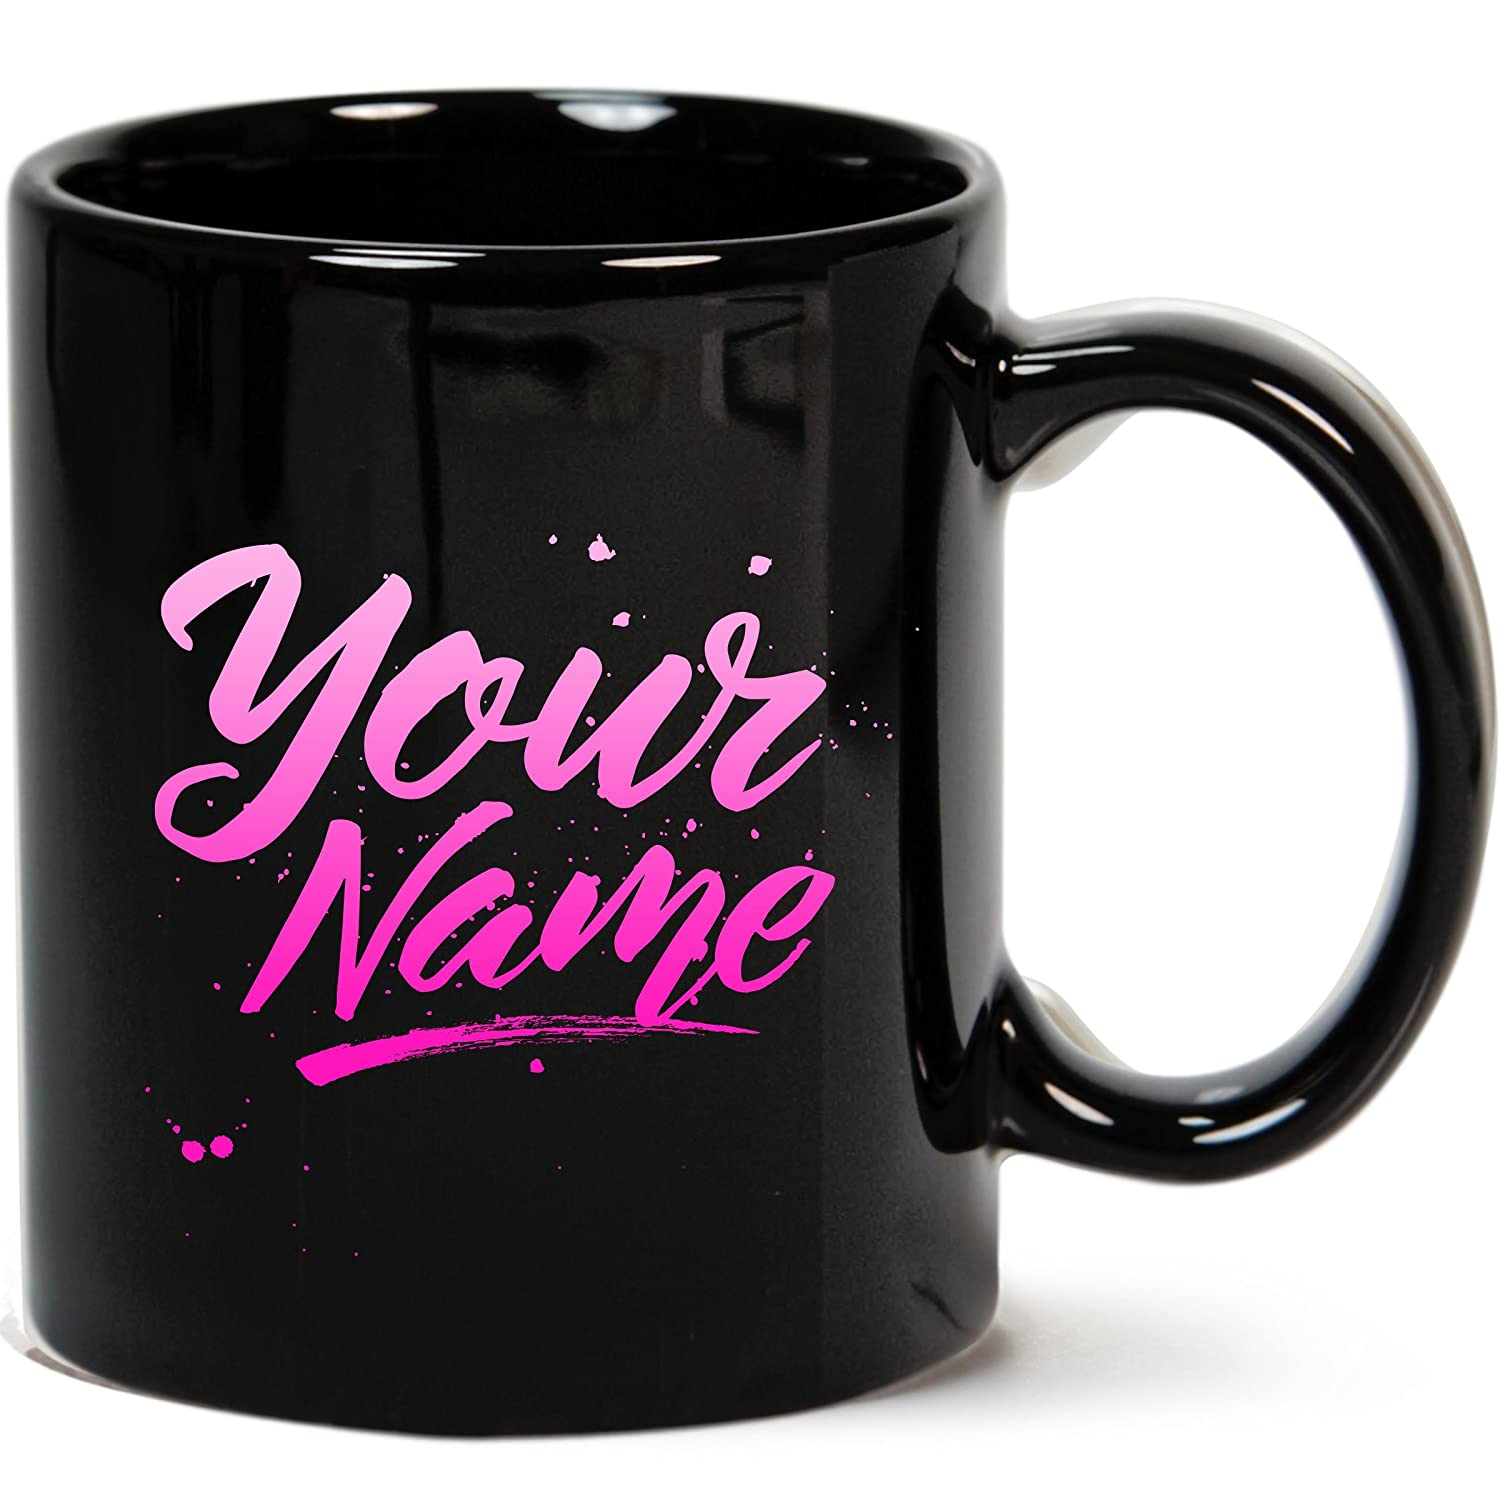 Personalized Coffee Mugs With Name Black Custom Cup Add Text Word Design Your Own Mug Gift